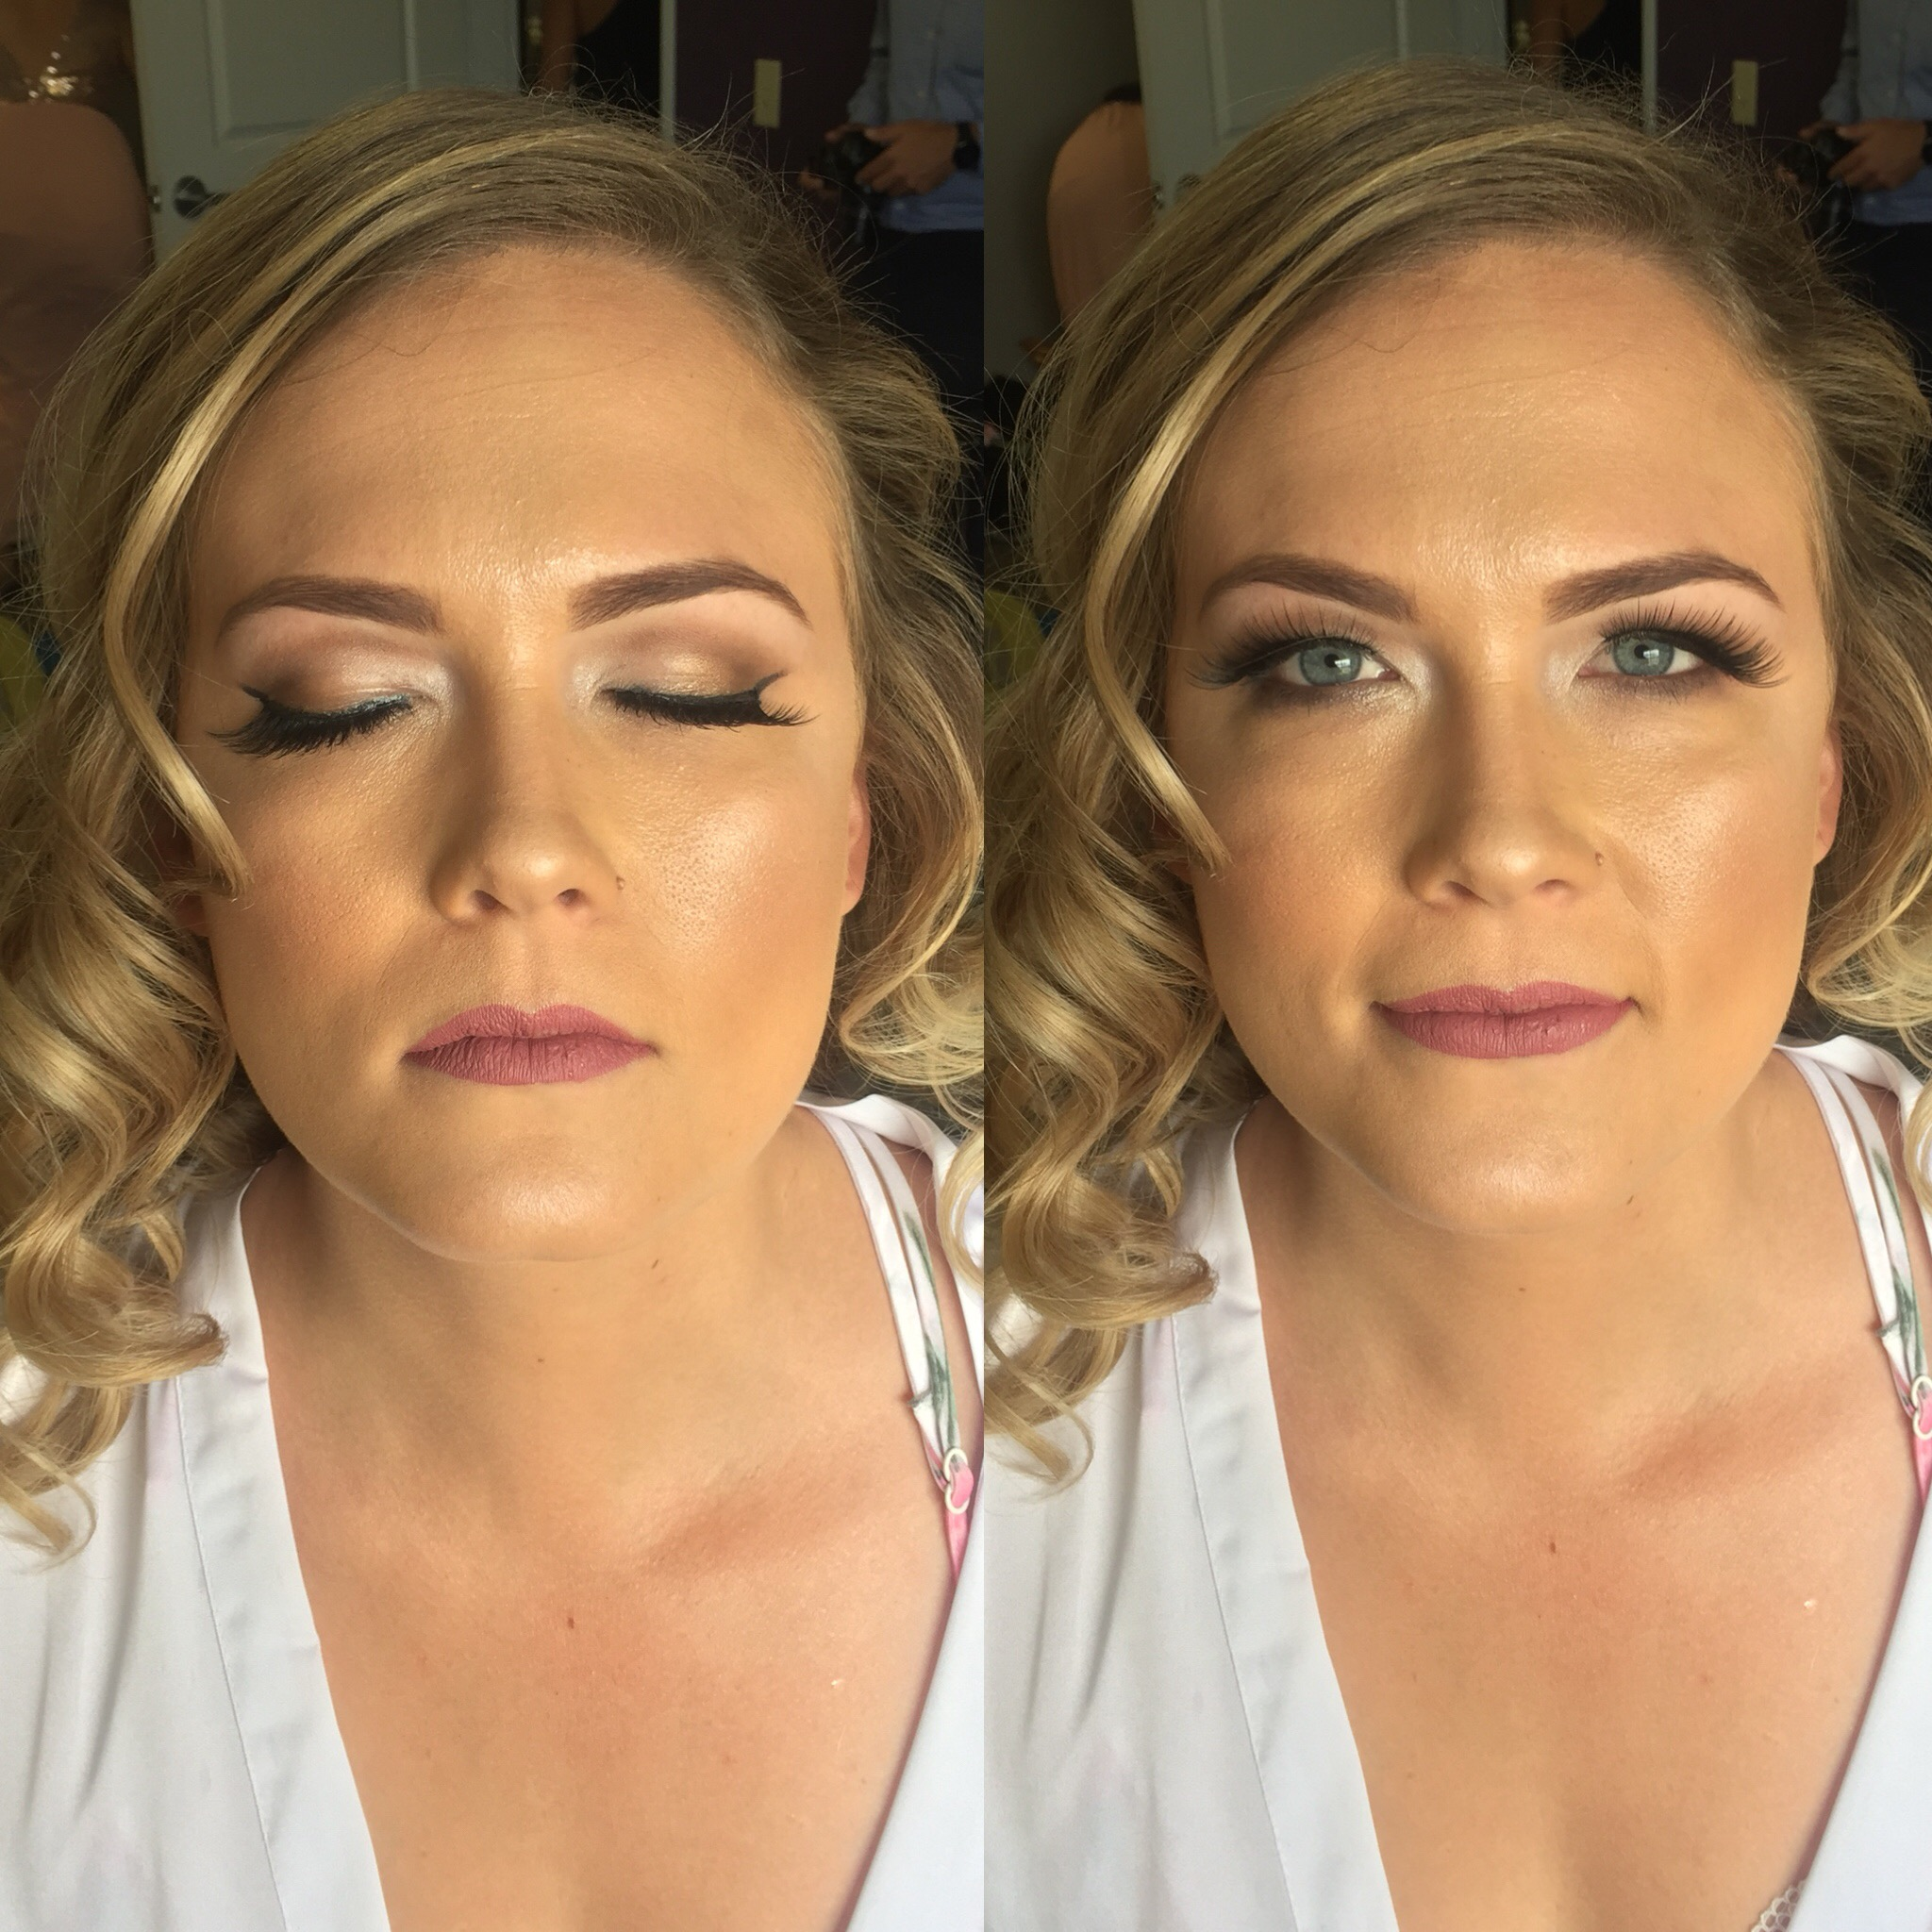 Make up by April